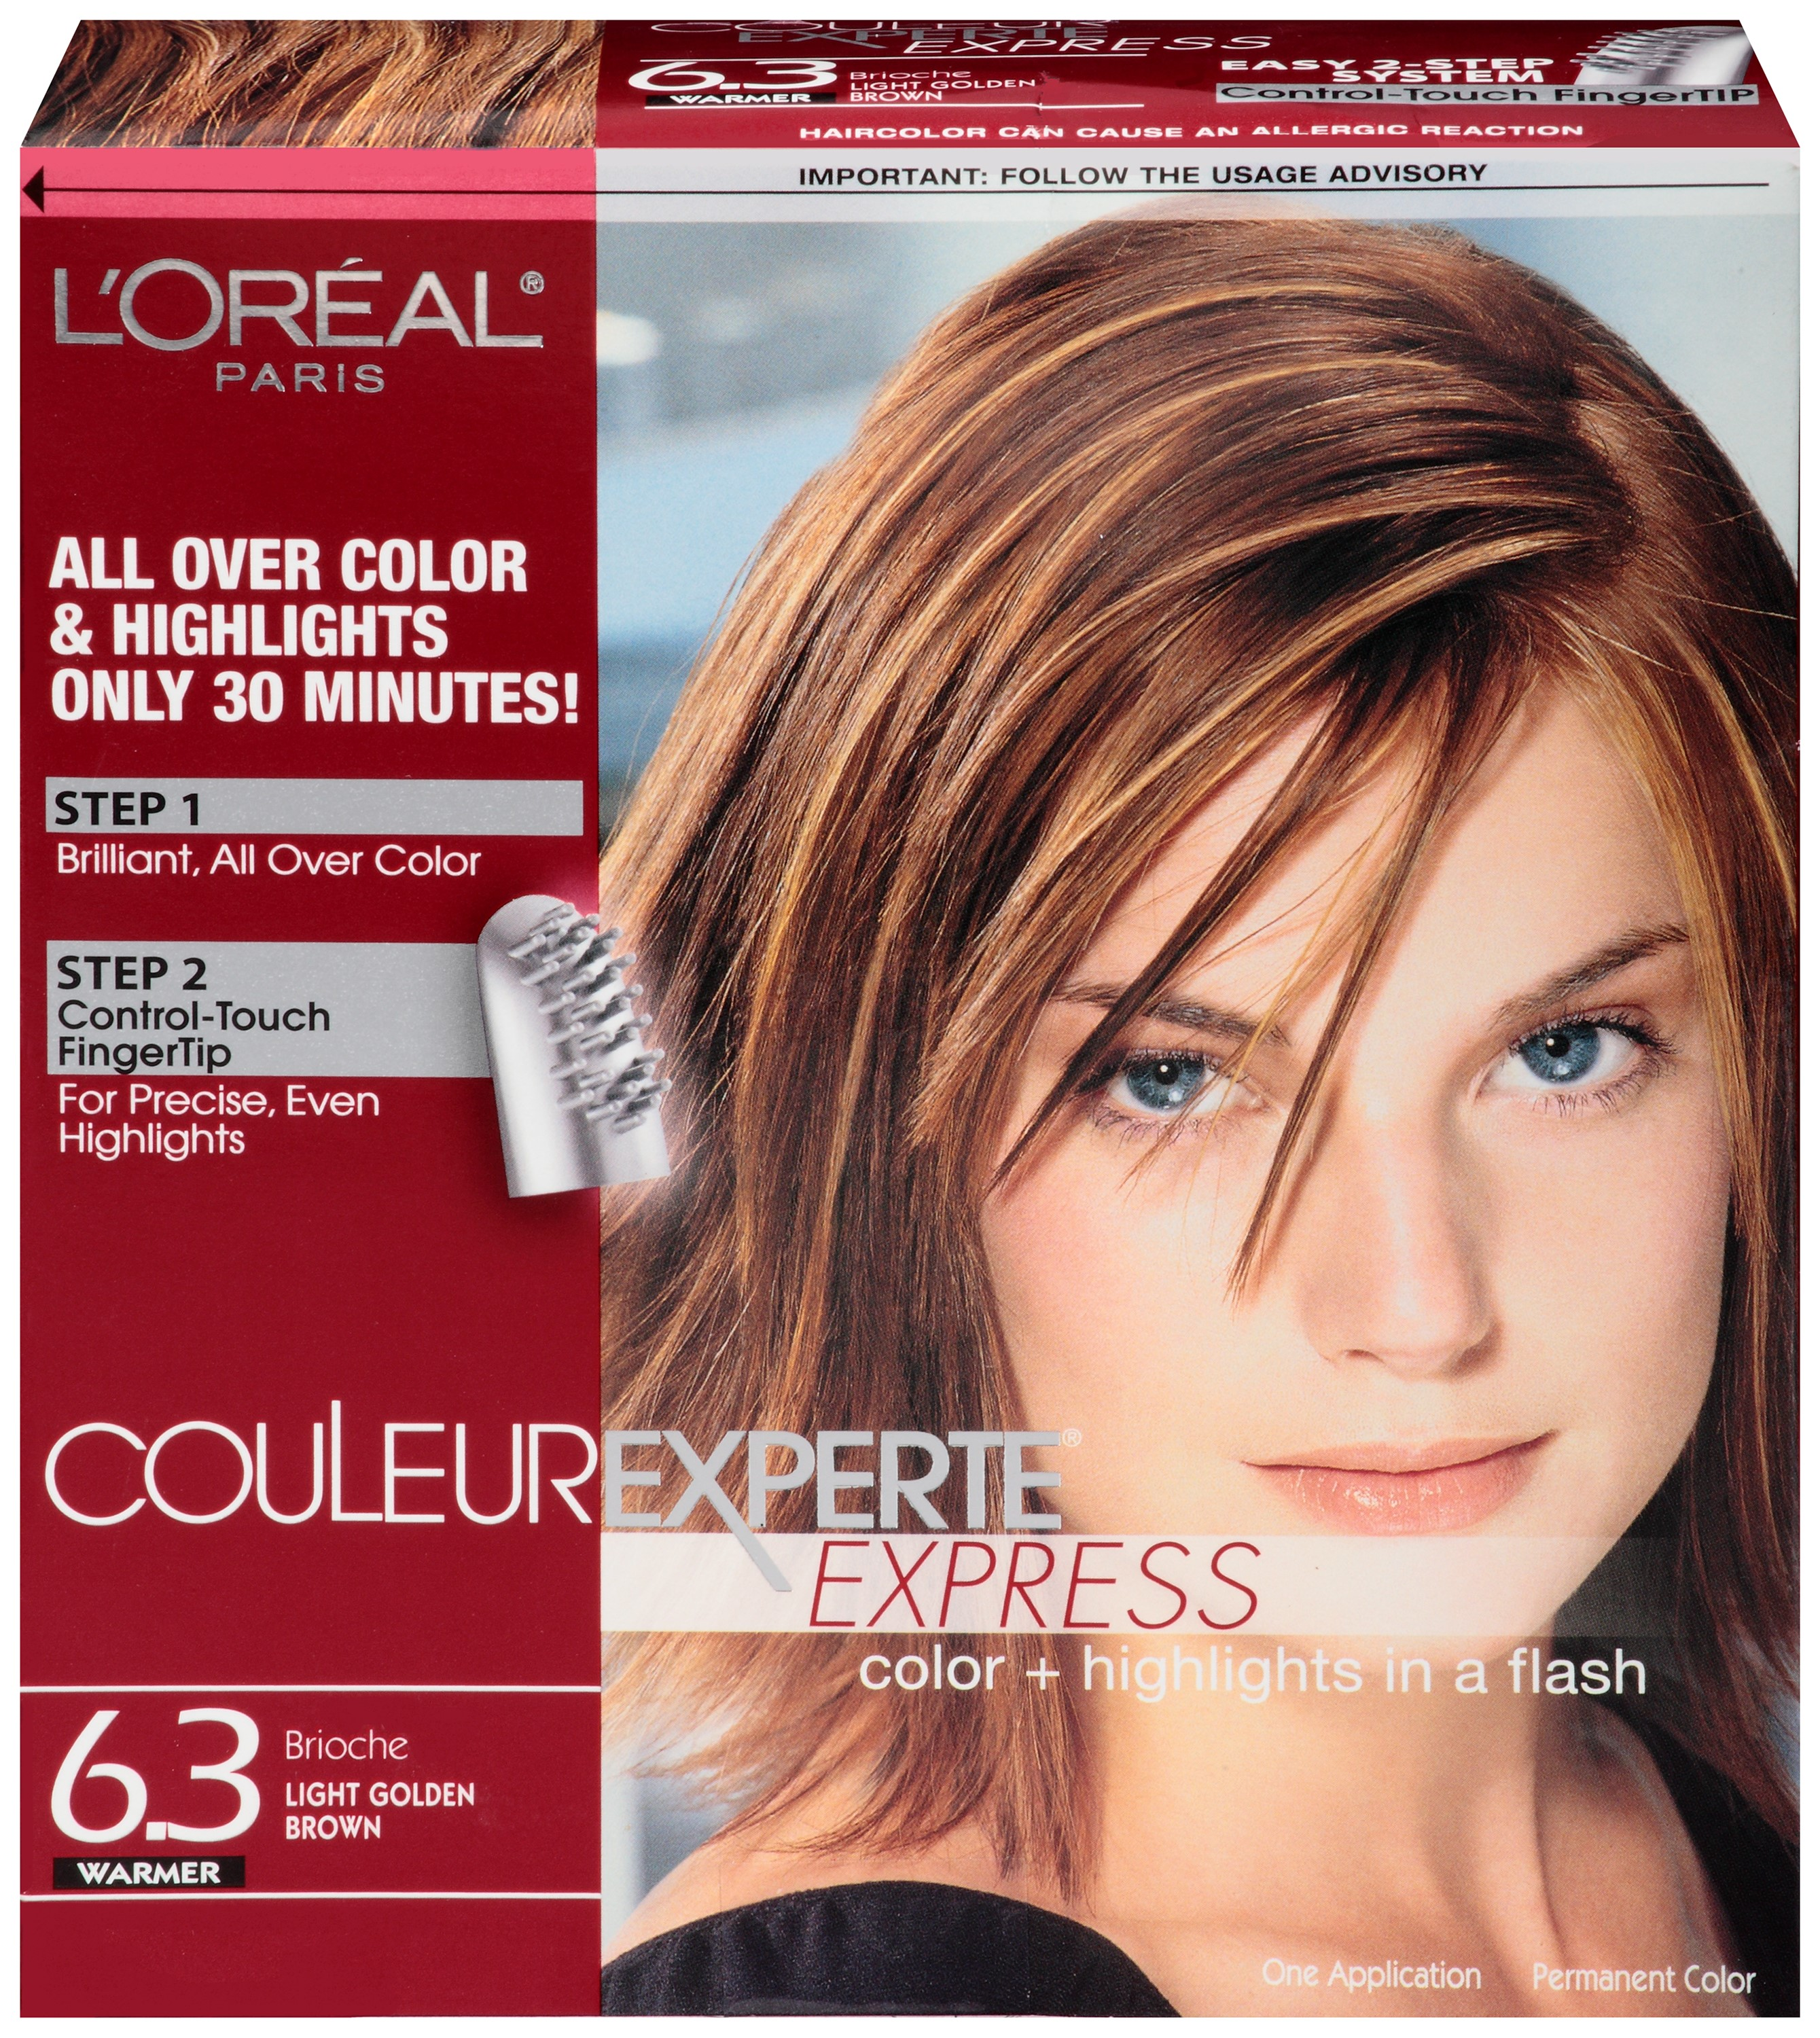 L'Oreal Couleur Experte Hair Color, Light Golden Brown Brioche